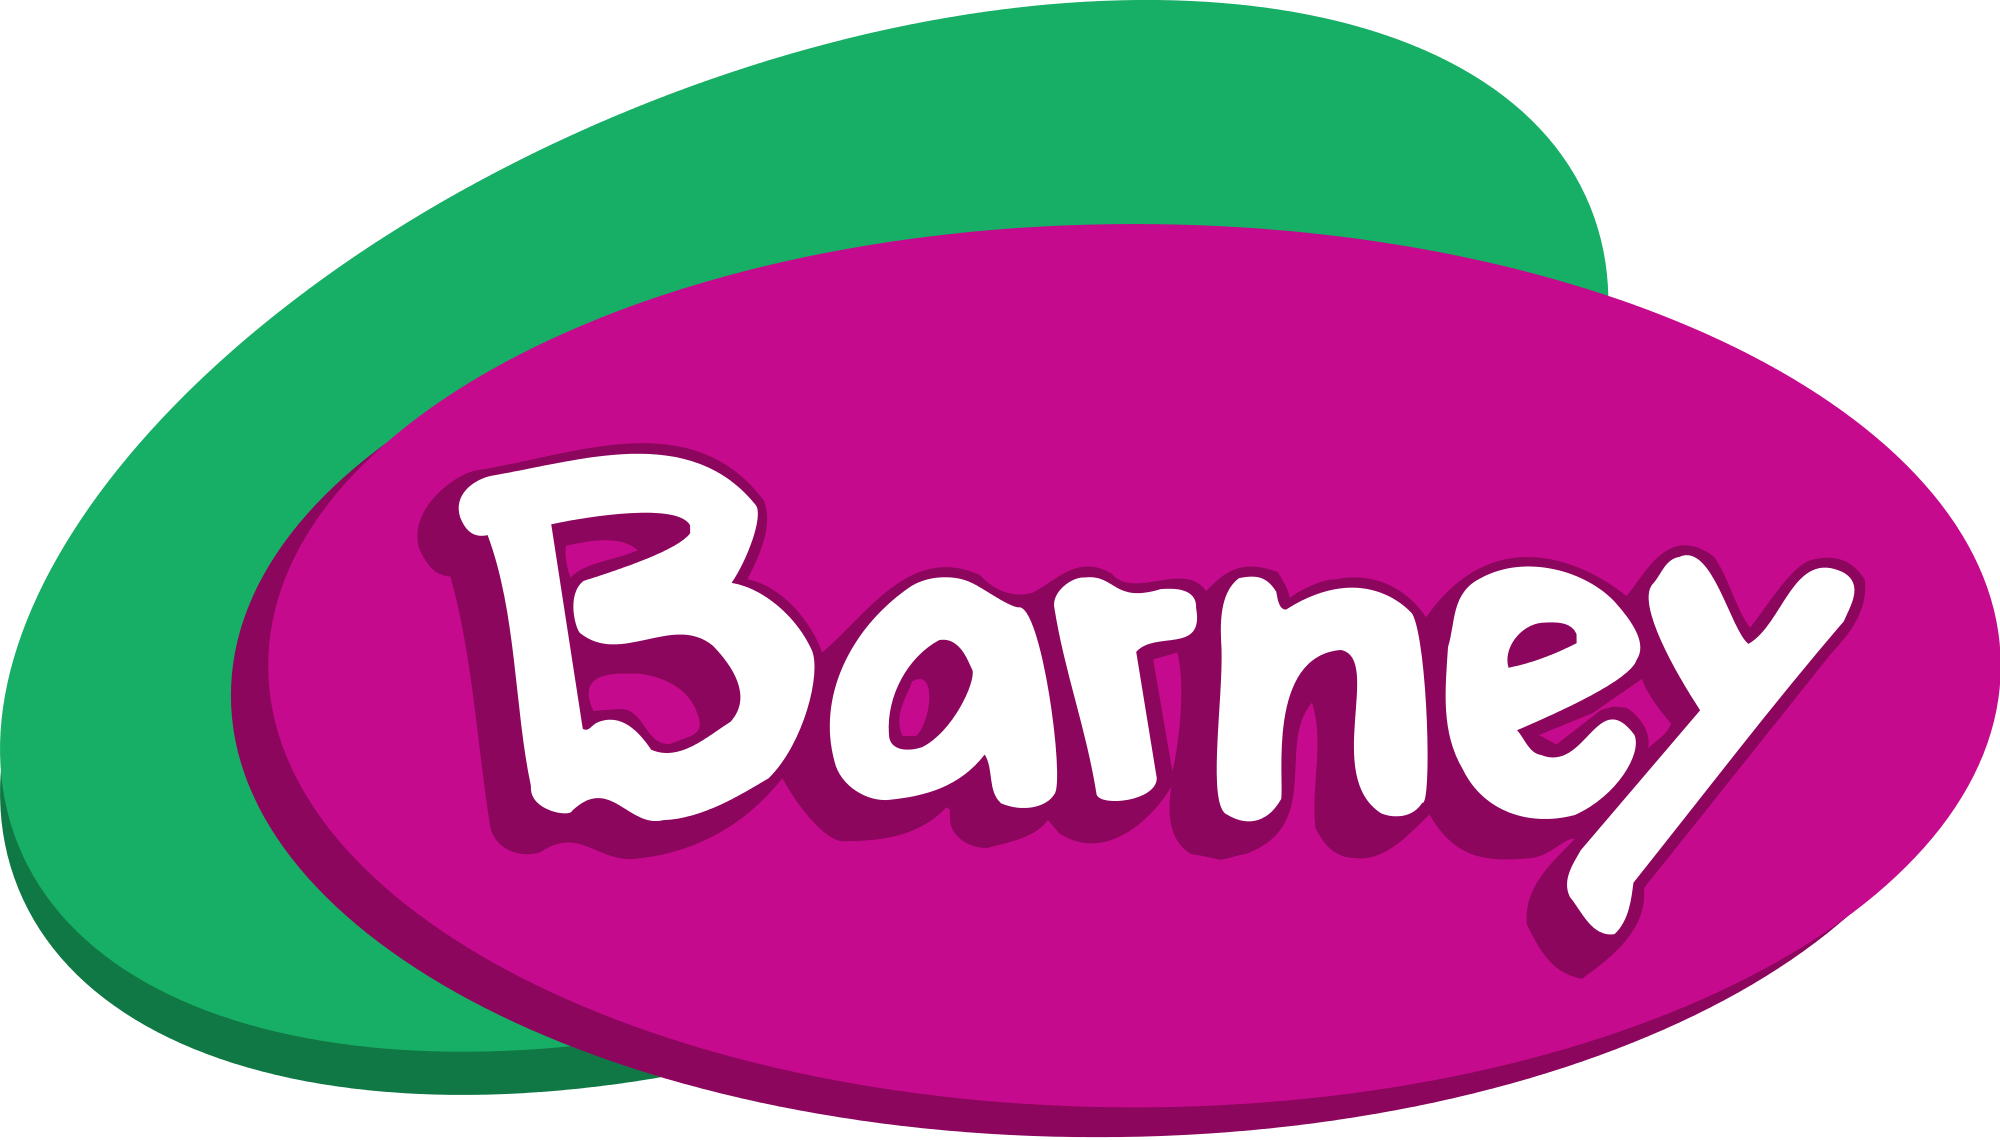 Barney And Friends Logo Transparent Png Stickpng